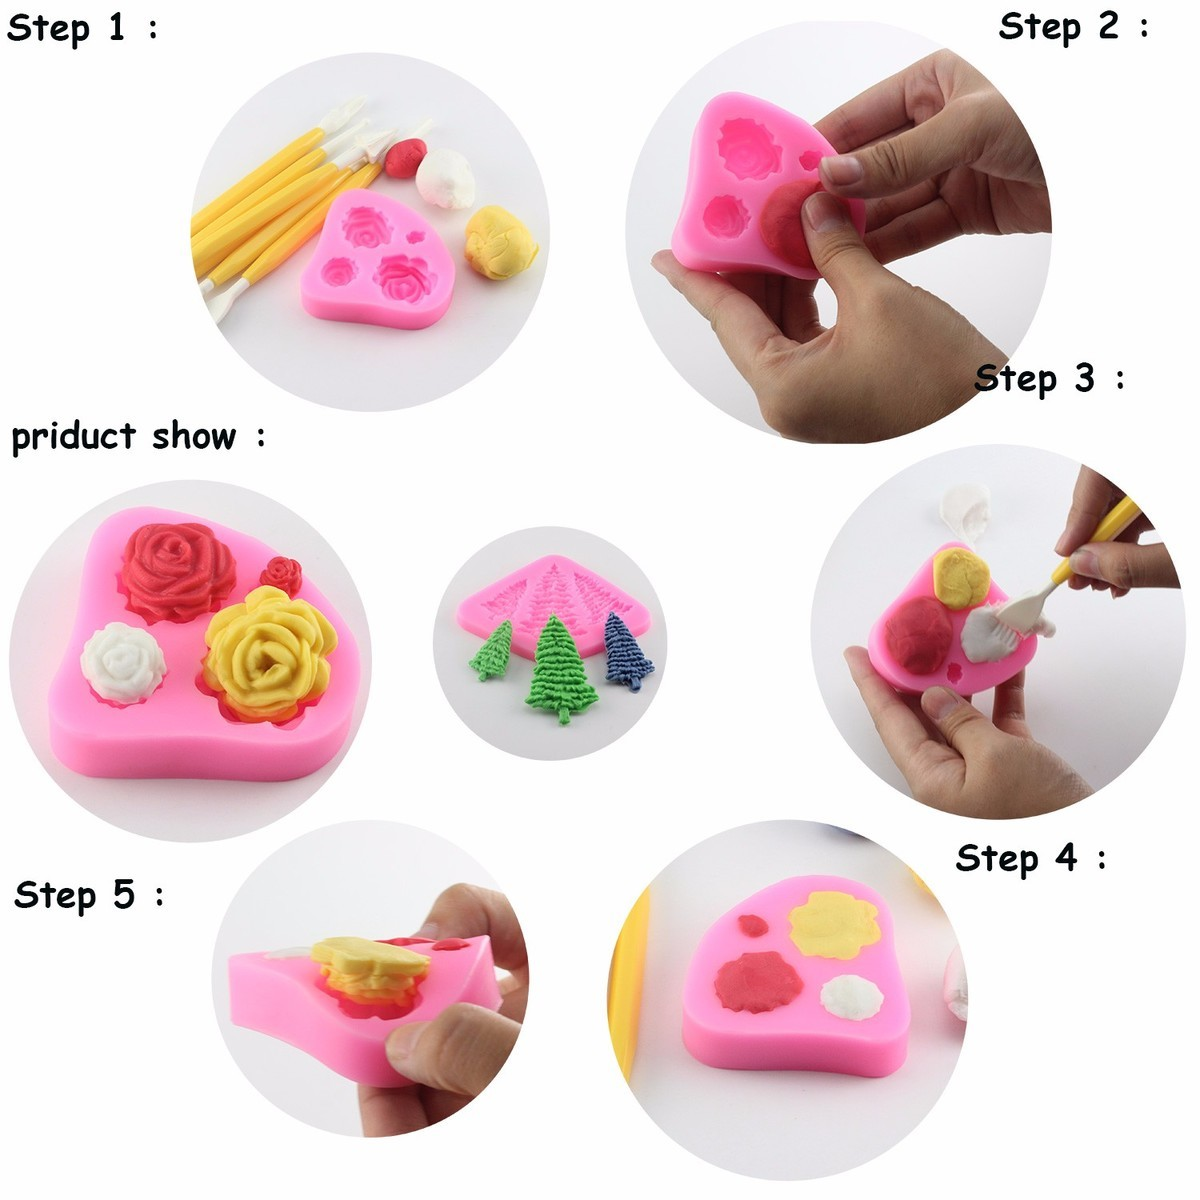 Clay Extruders Mujiang 3d Butterfly Silicone Baking Molds Candy Chocolate Fimo Clay Mold Diy Sugar Craft Cupcake Fondant Cake Decorating Tools Moderate Cost